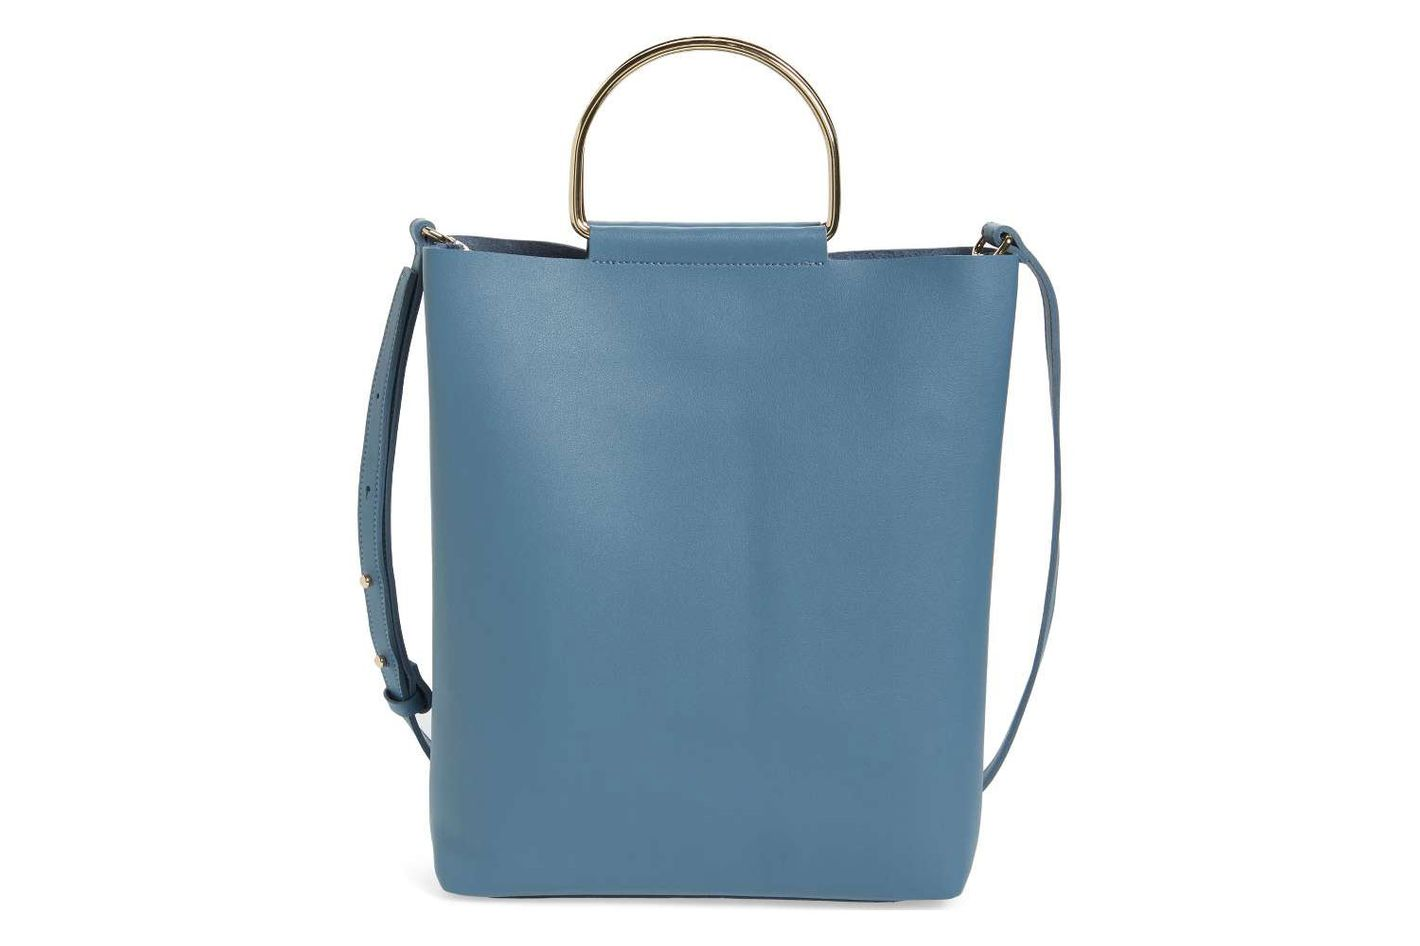 Topshop Faux Leather Tote